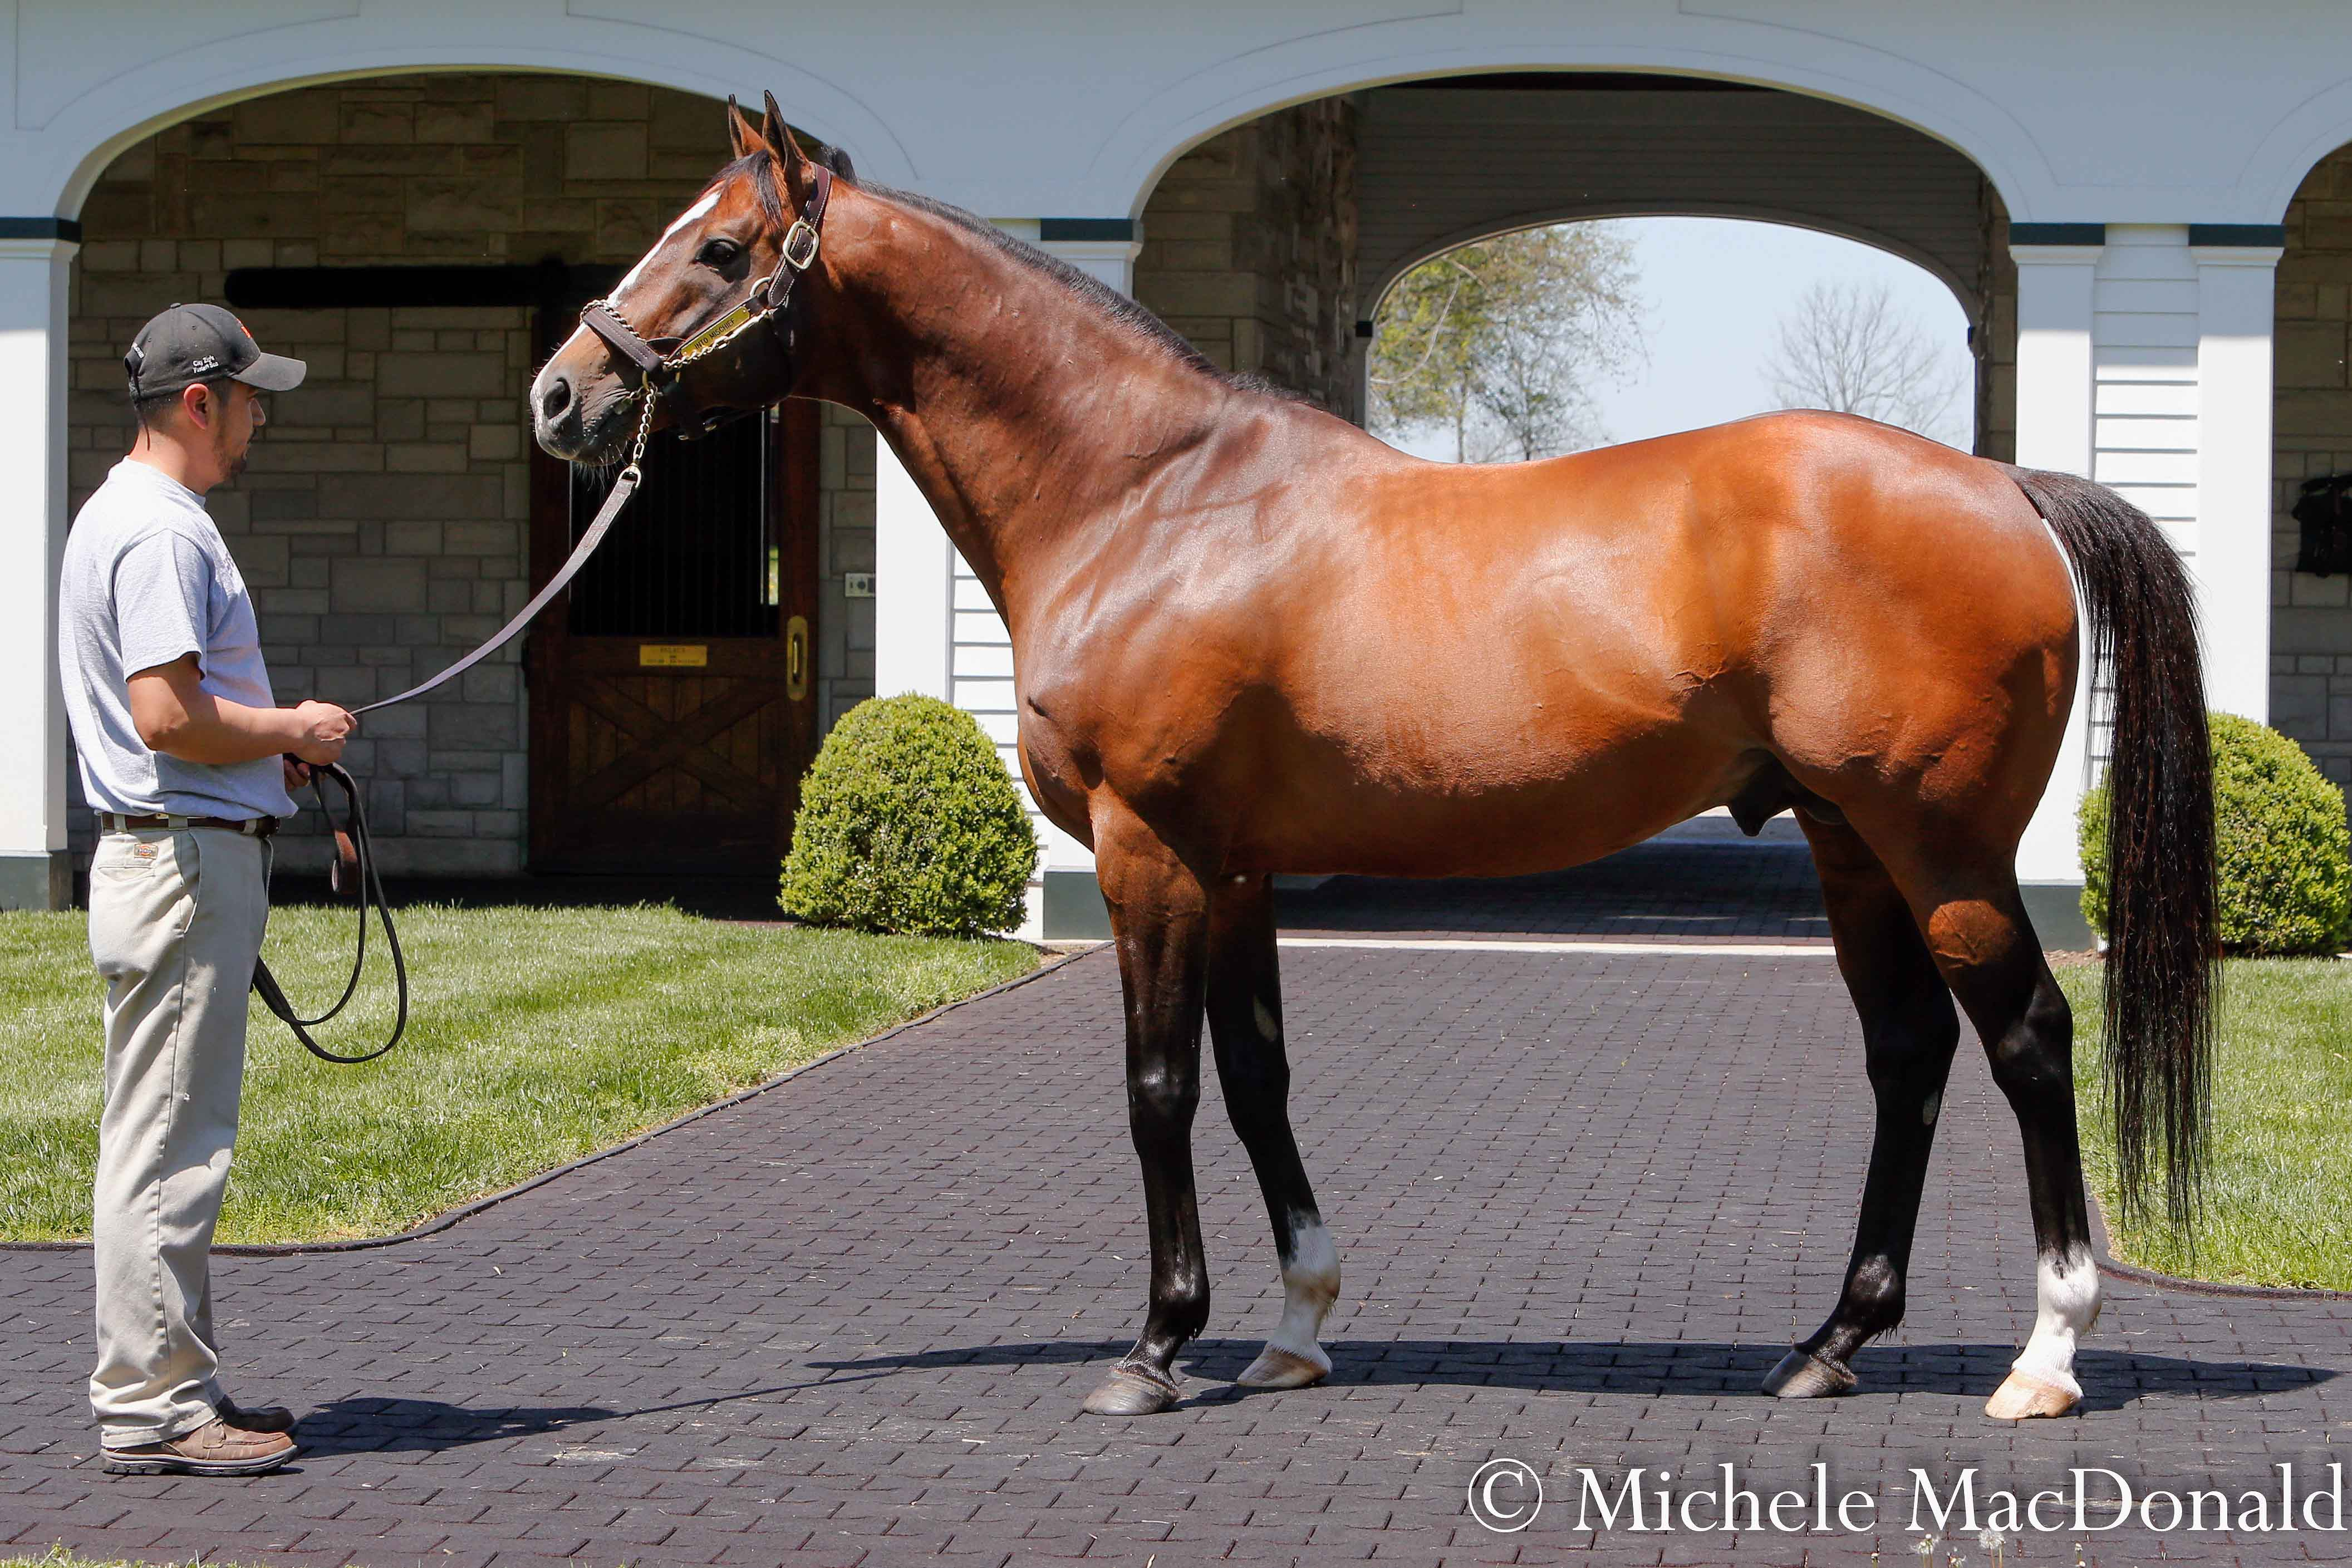 Star sire: Into Mischief, another son of Leslie's Lady, at Spendthrift Farm in Kentucky. Photo: Michele MacDonald